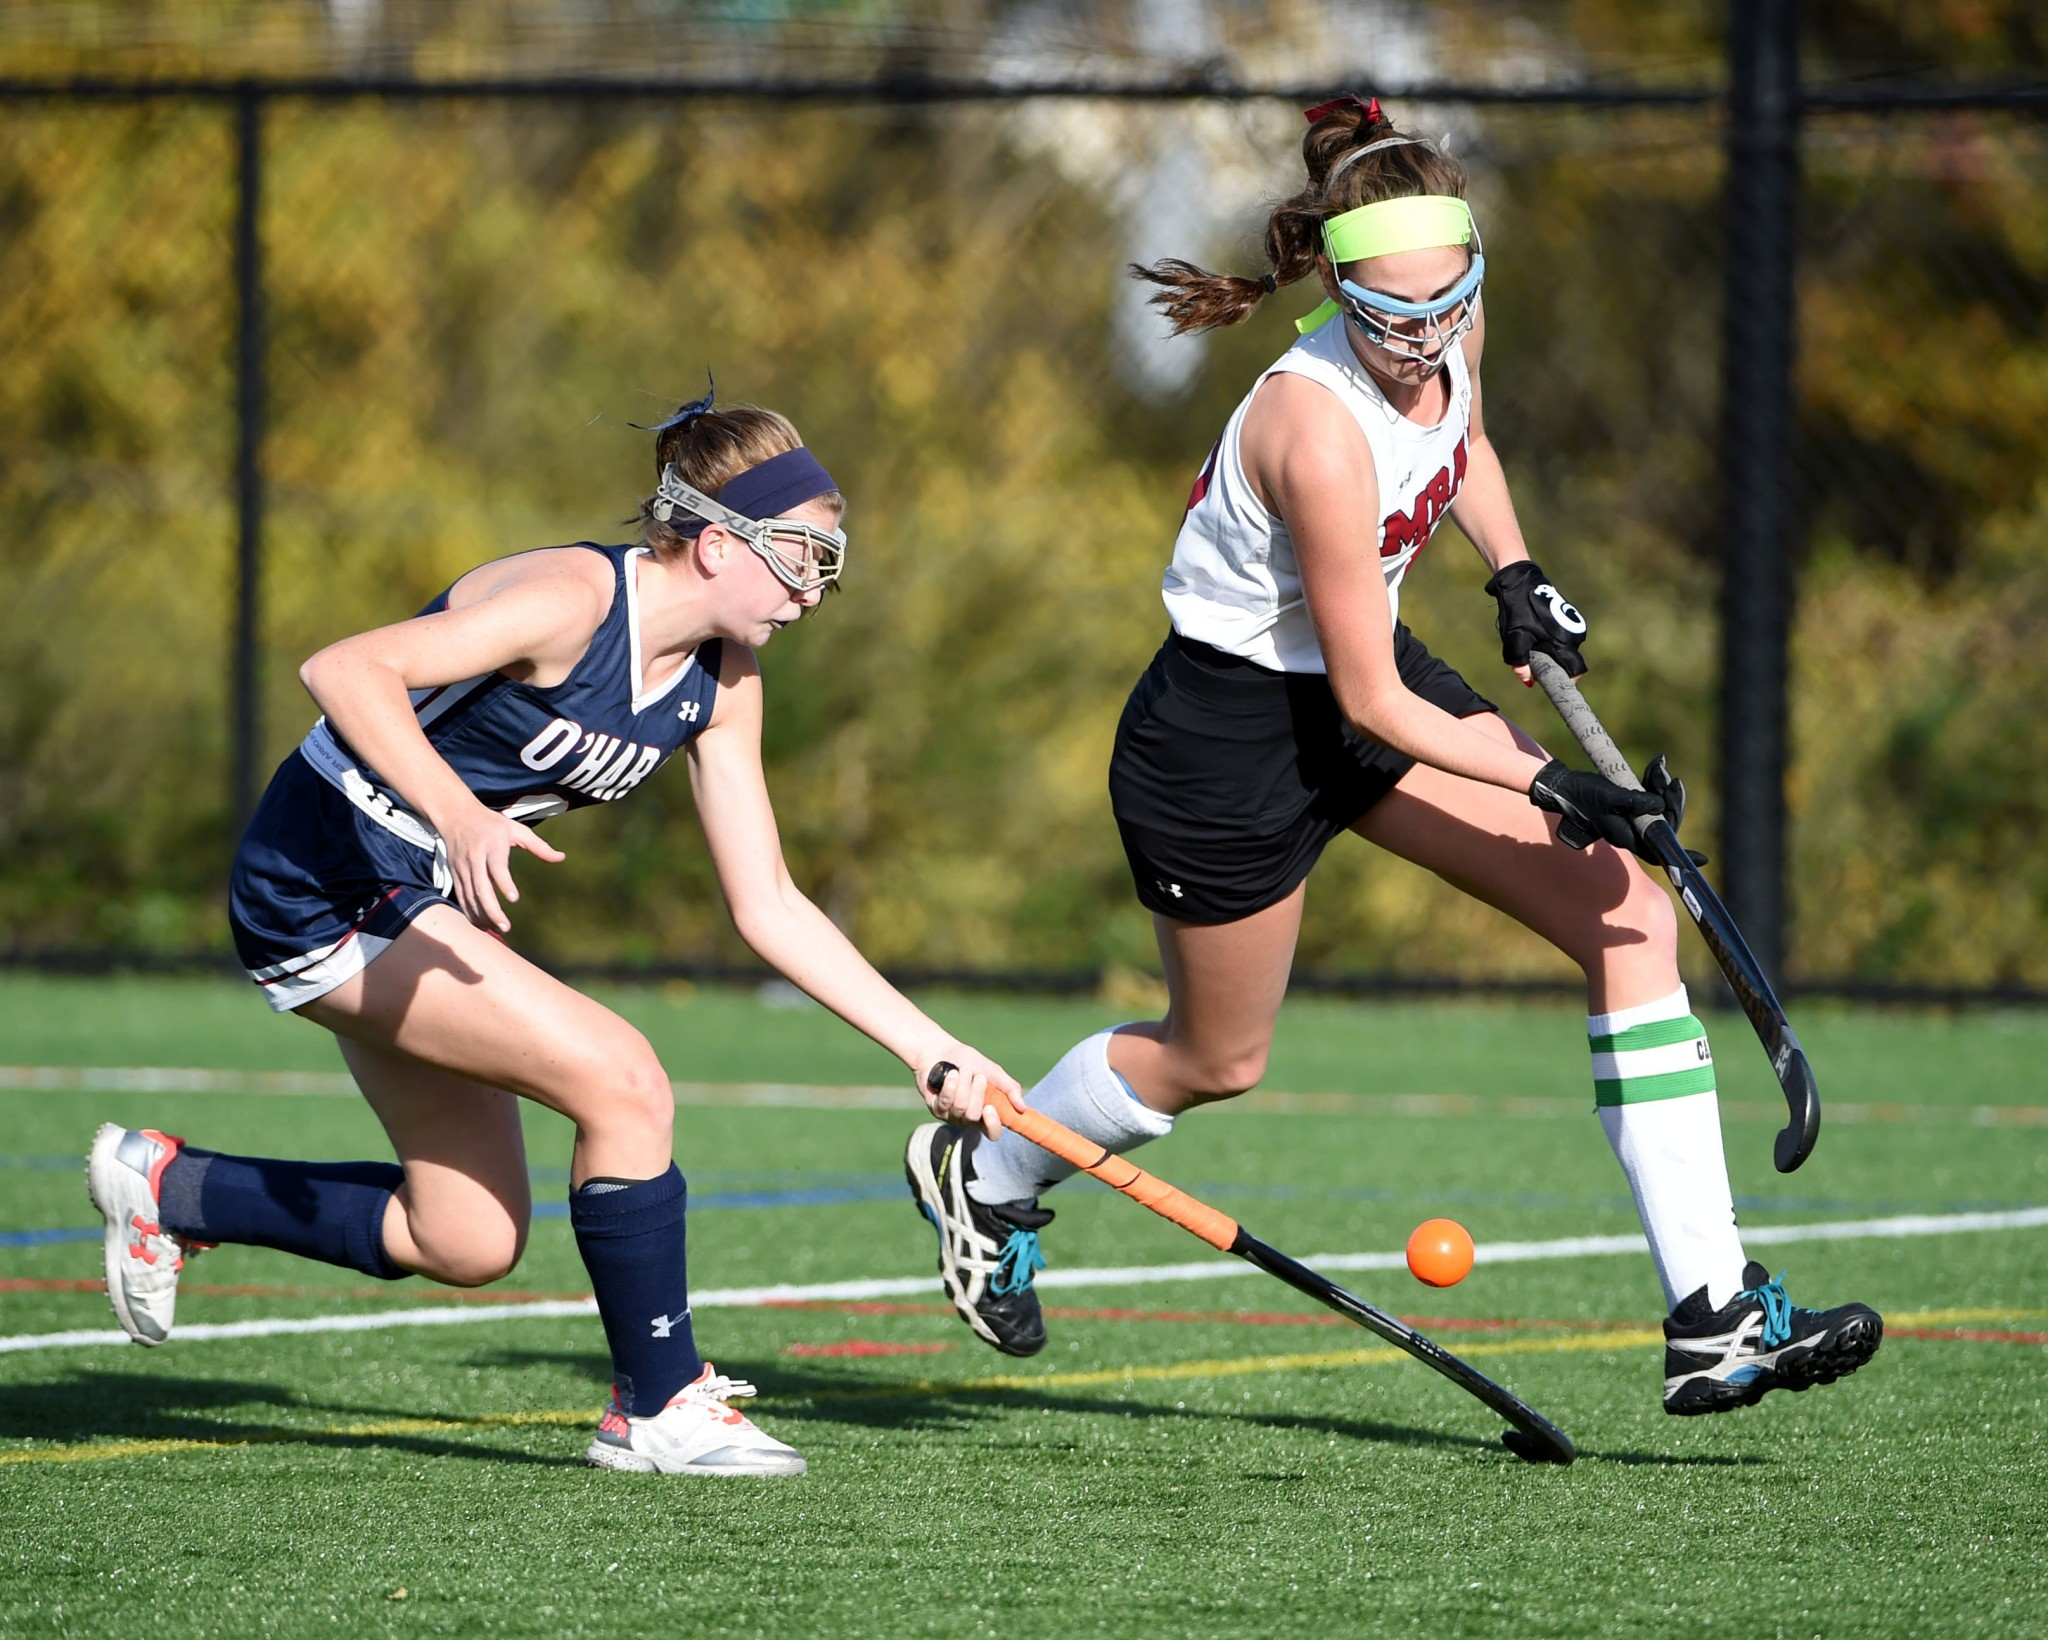 Bonner & Prendergast's Riley Dolan, right, tries to get around Cardinal O'Hara's Sara Hayes. (Digital First Media/Pete Bannan)